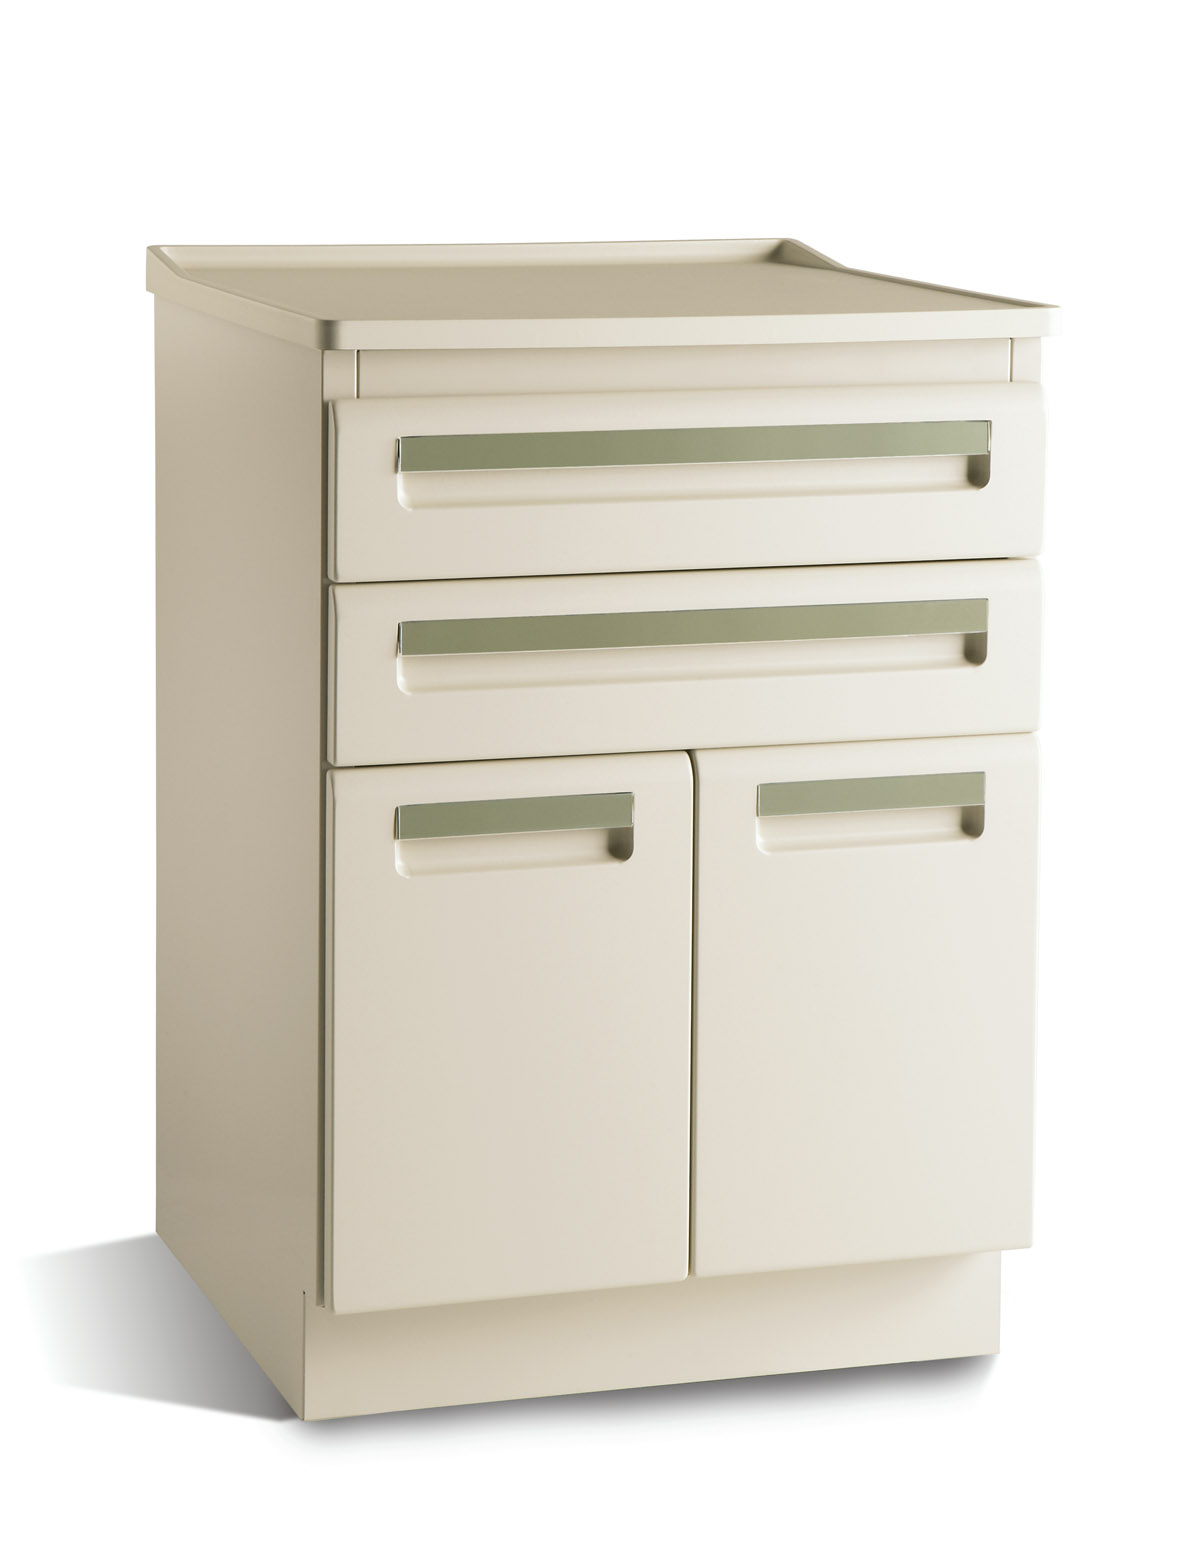 CABINET, TREATMENT, 24x18, 2 DR/2 DRW, MOSS